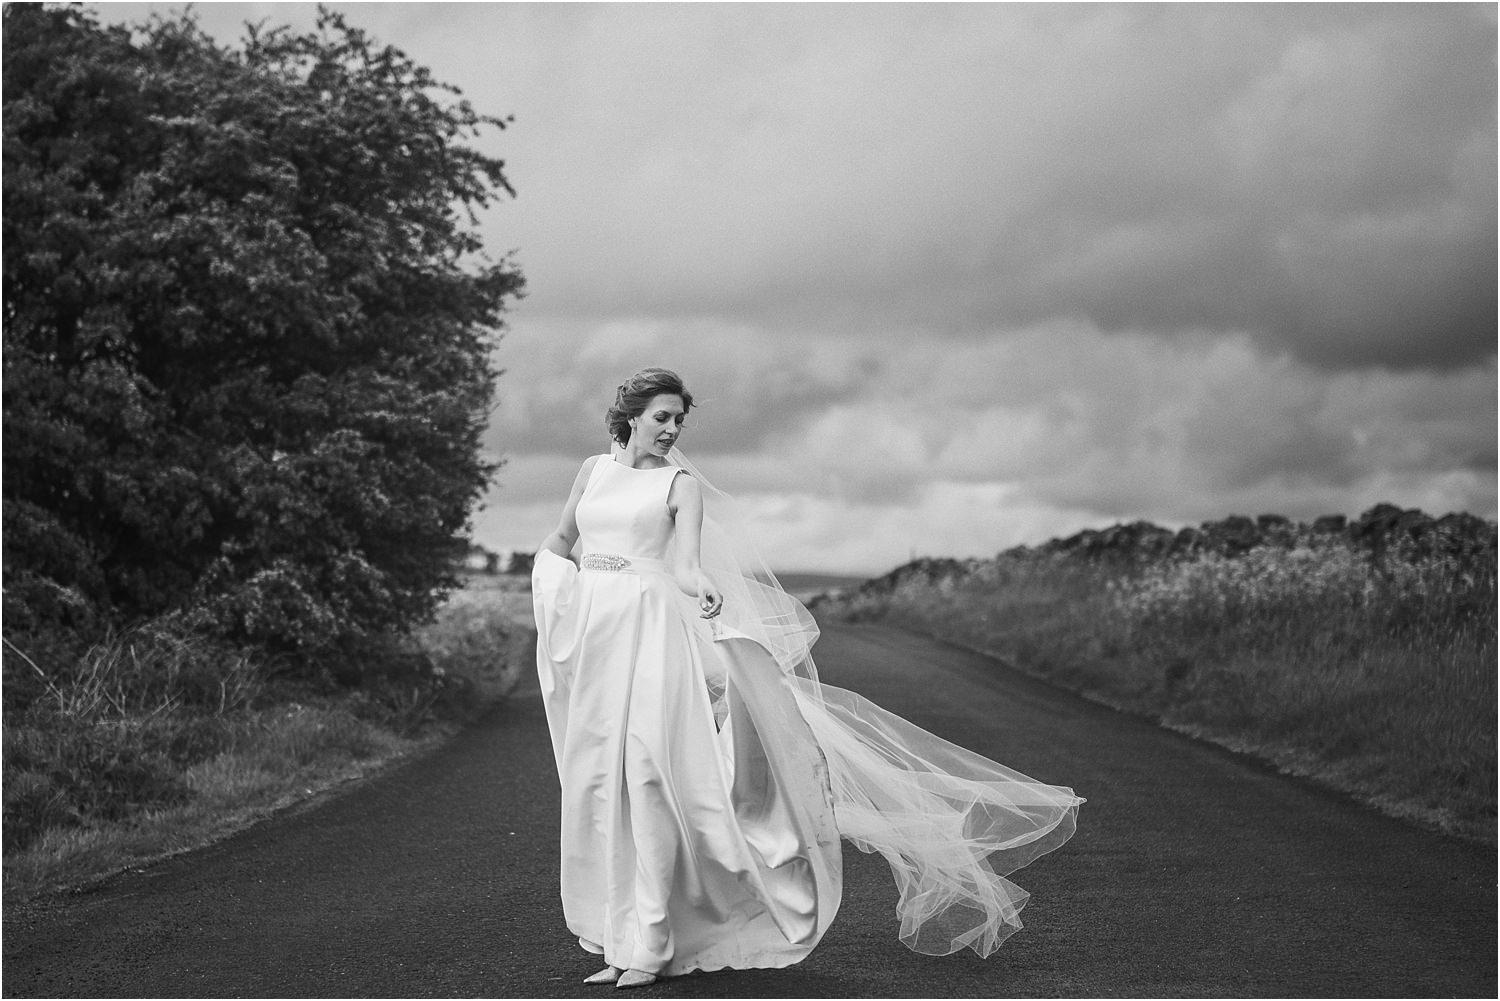 Bride in Jesus Peiro dress on Lnacshire lane.